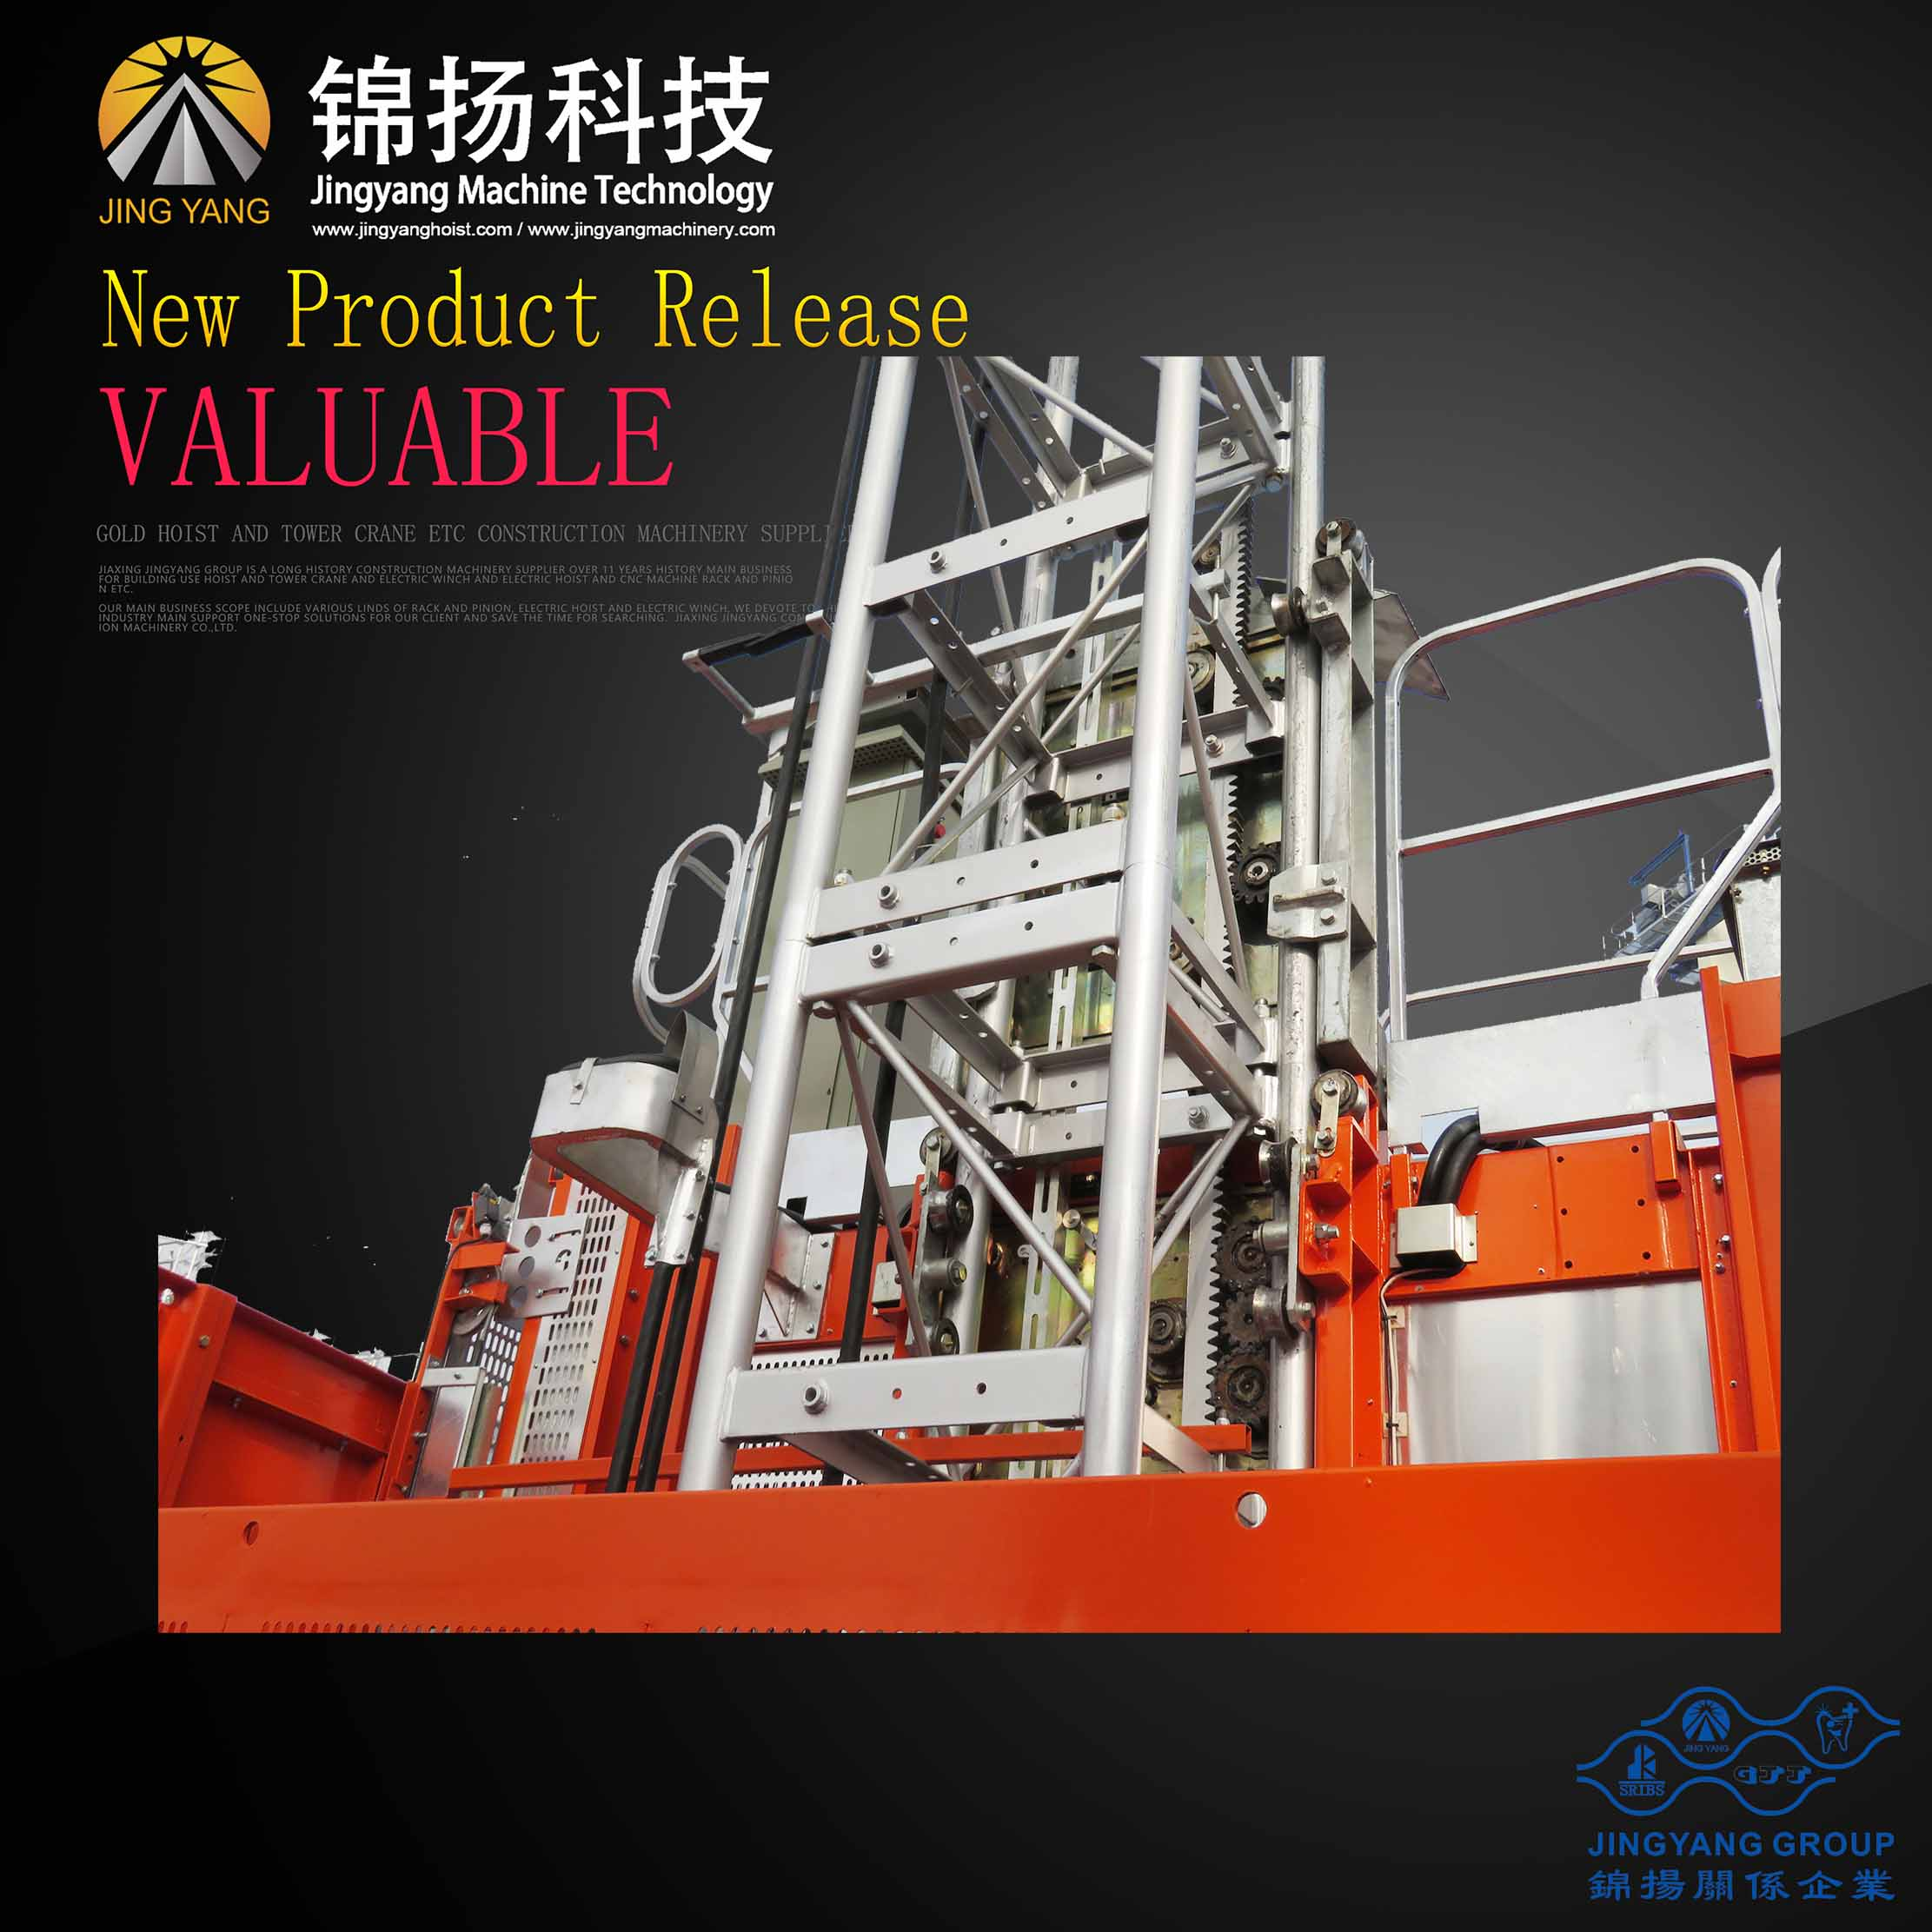 GJJ Hoist with super height cage Featured Image